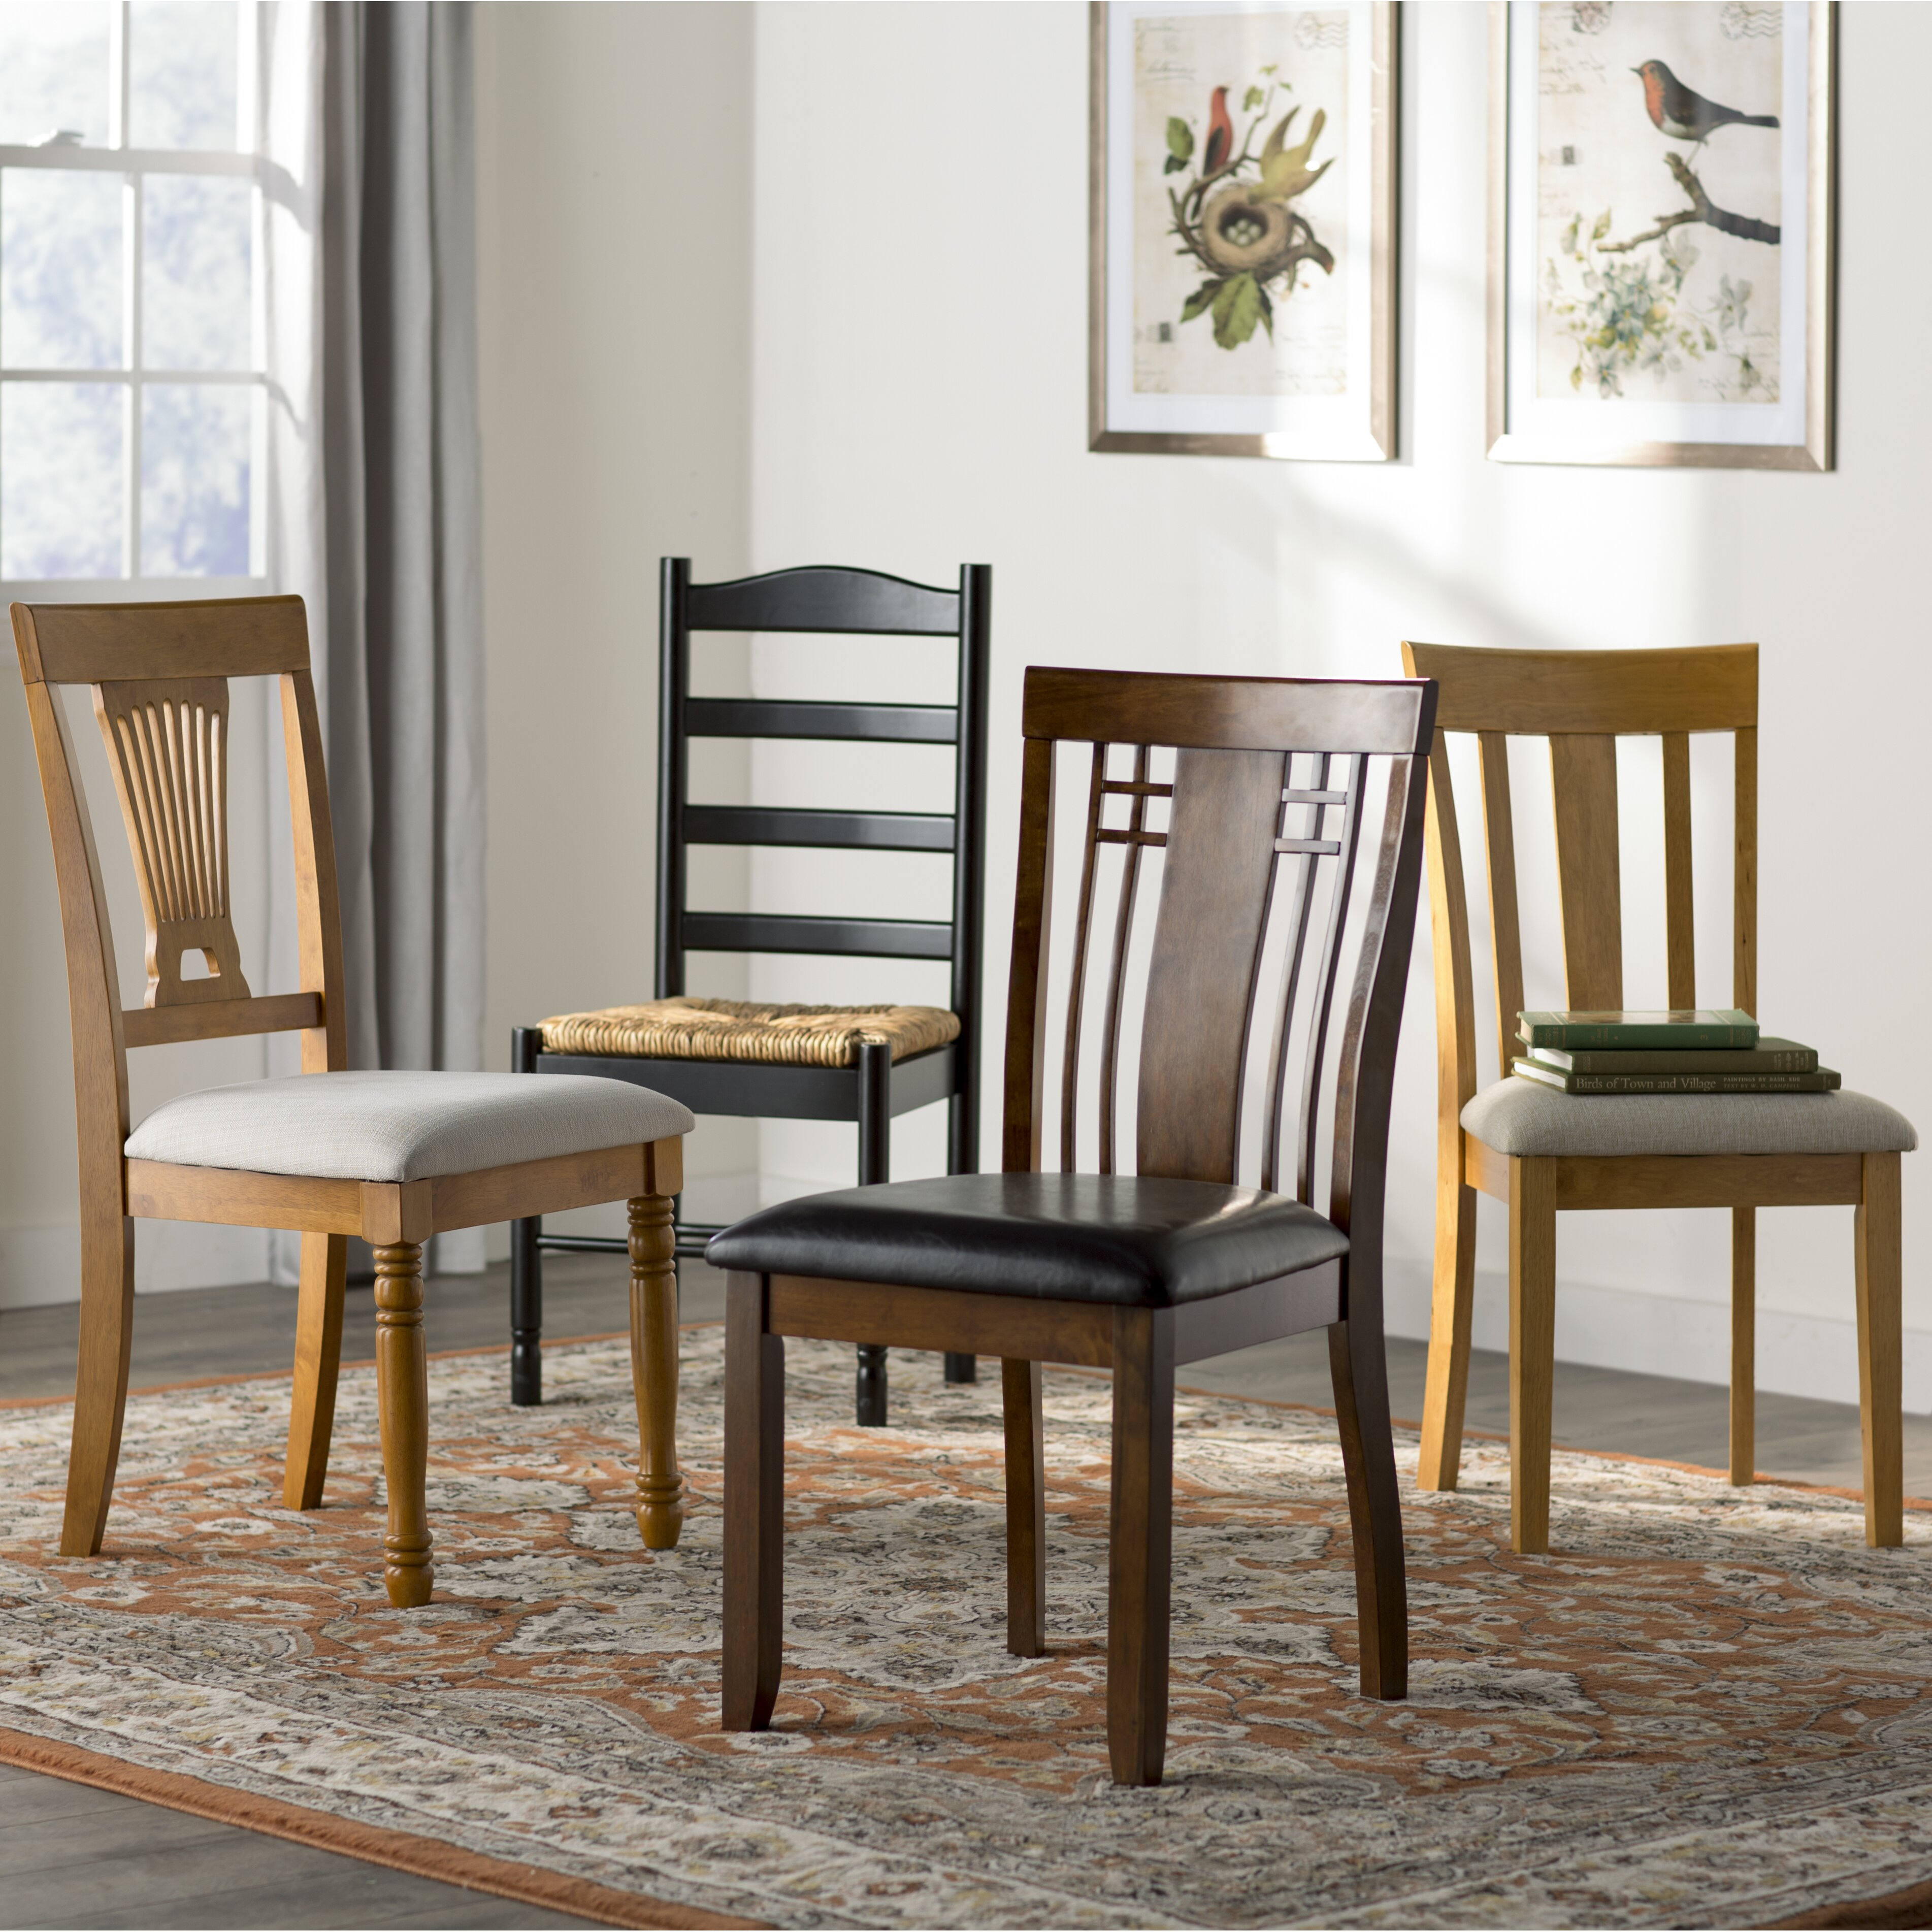 Andover Mills Bradlee Dining Chair Set  Reviews Wayfair - Dining chairs in living room